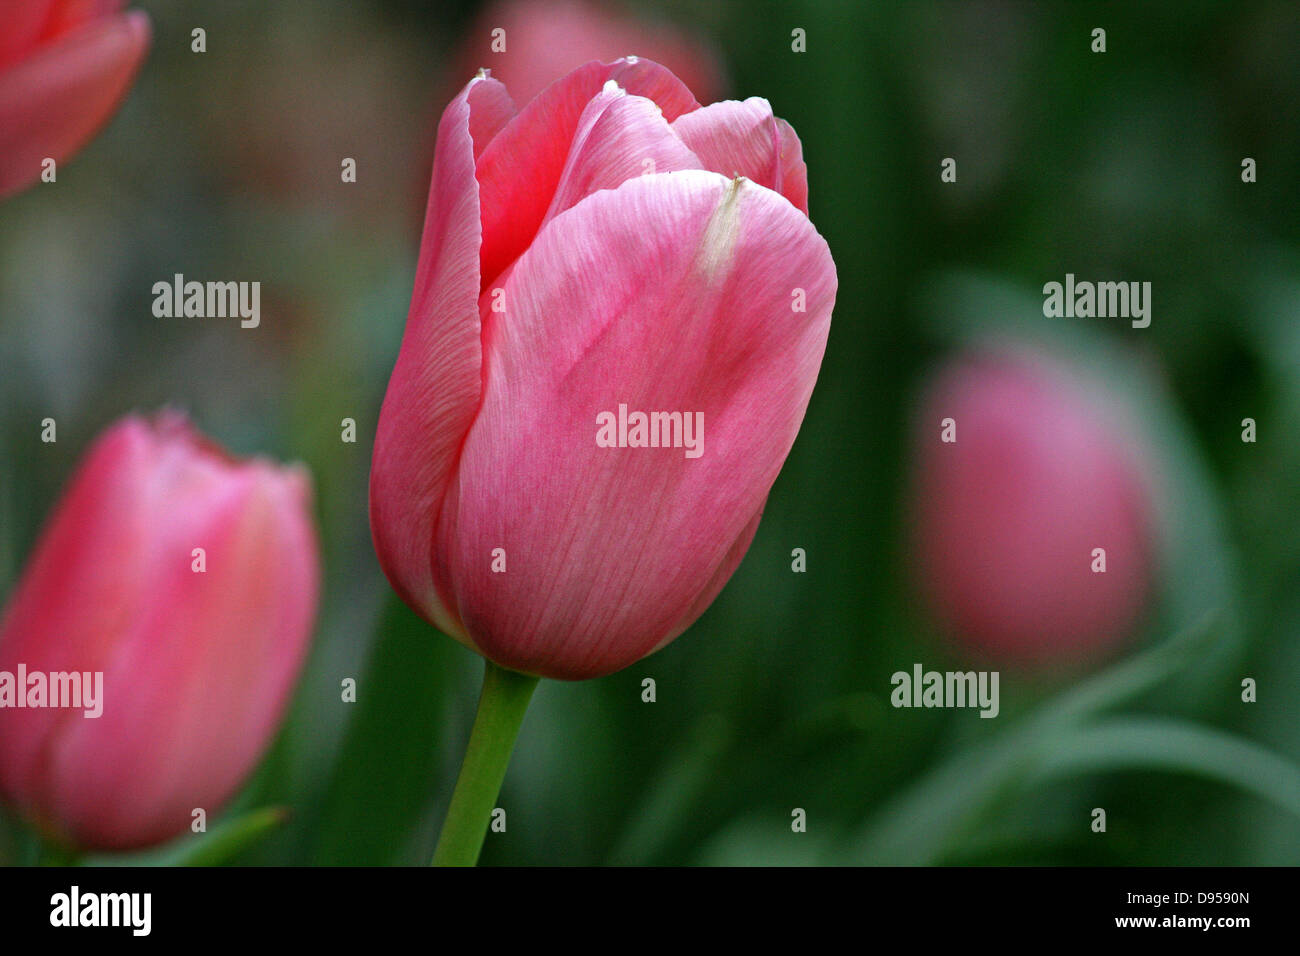 Tulip,Close-up of a single flower head of a Pink Tulip. - Stock Image